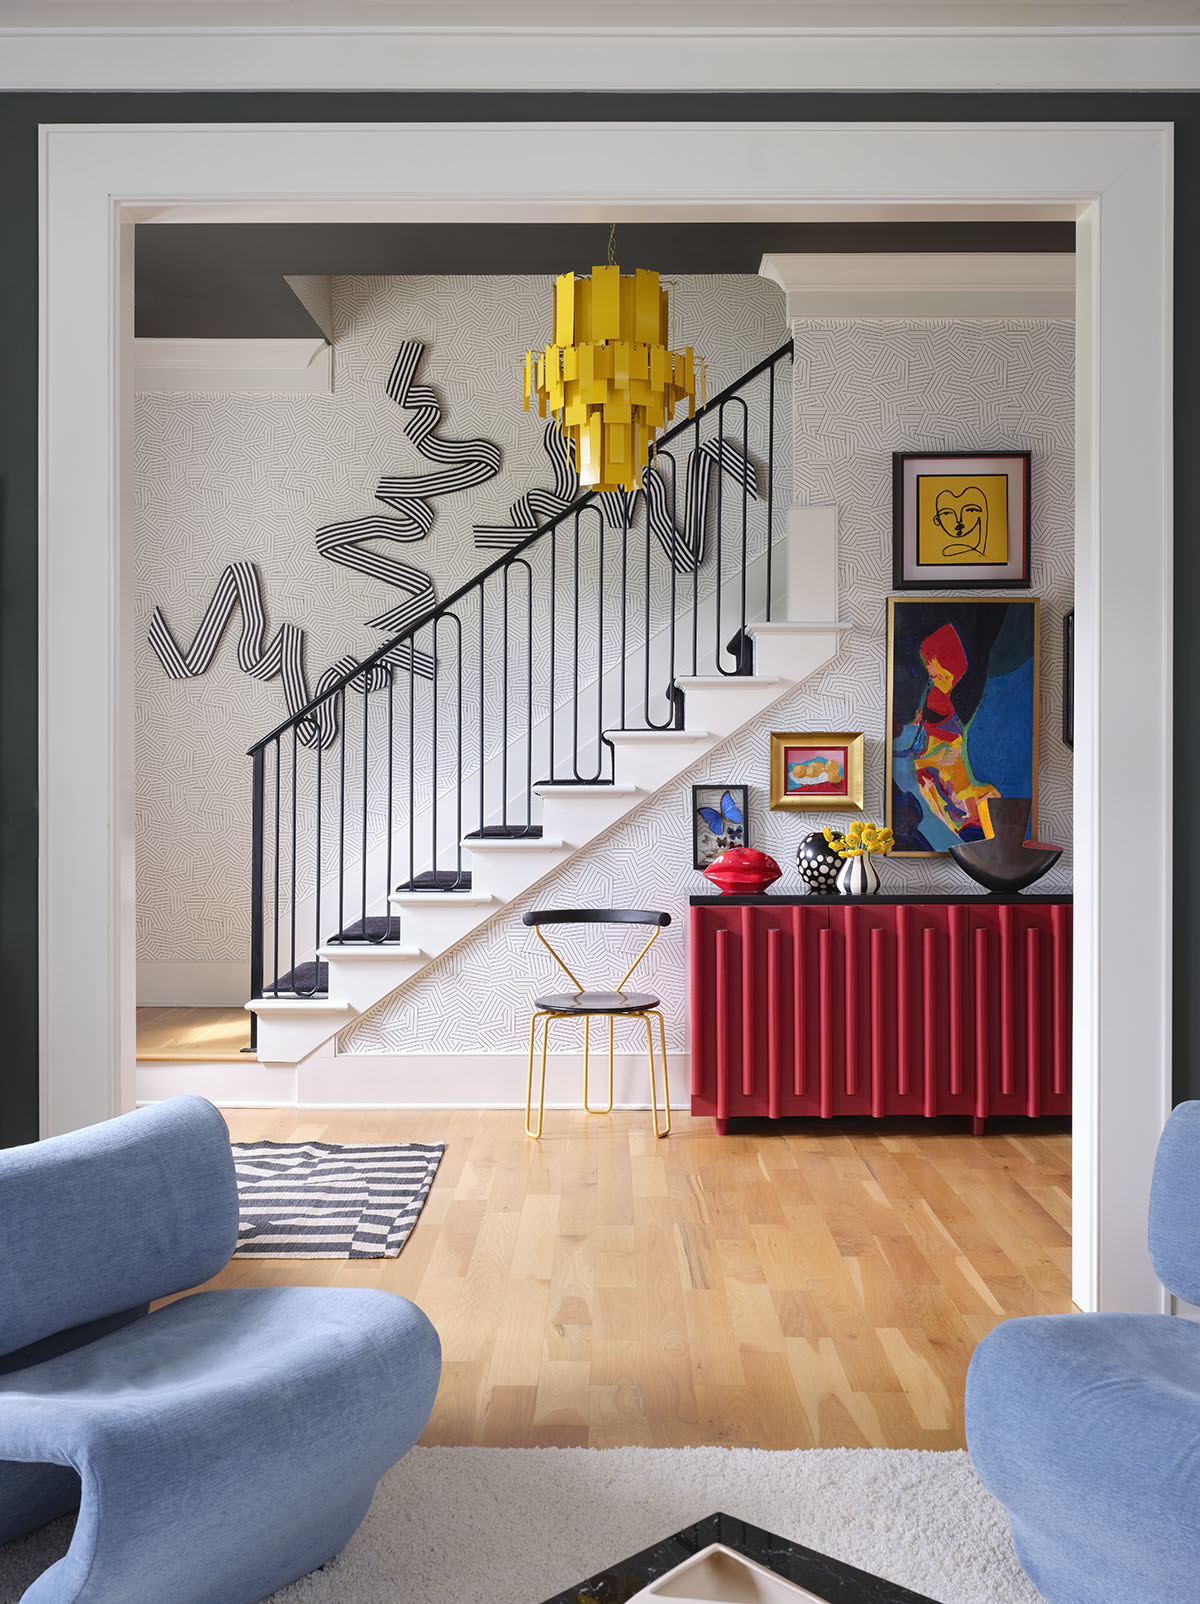 The entryway really showcases the Alice in Wonderland effect with its magical fusion of large-scale art, graphic patterns, and playful color combinations. Custom Chris Lund Cabinet | Custom Yellow Chandelier |Angela Chrusciaki Blehm wall art | Vintage Accent Chair | Vintage Vase |Missoni for Stark Runner |